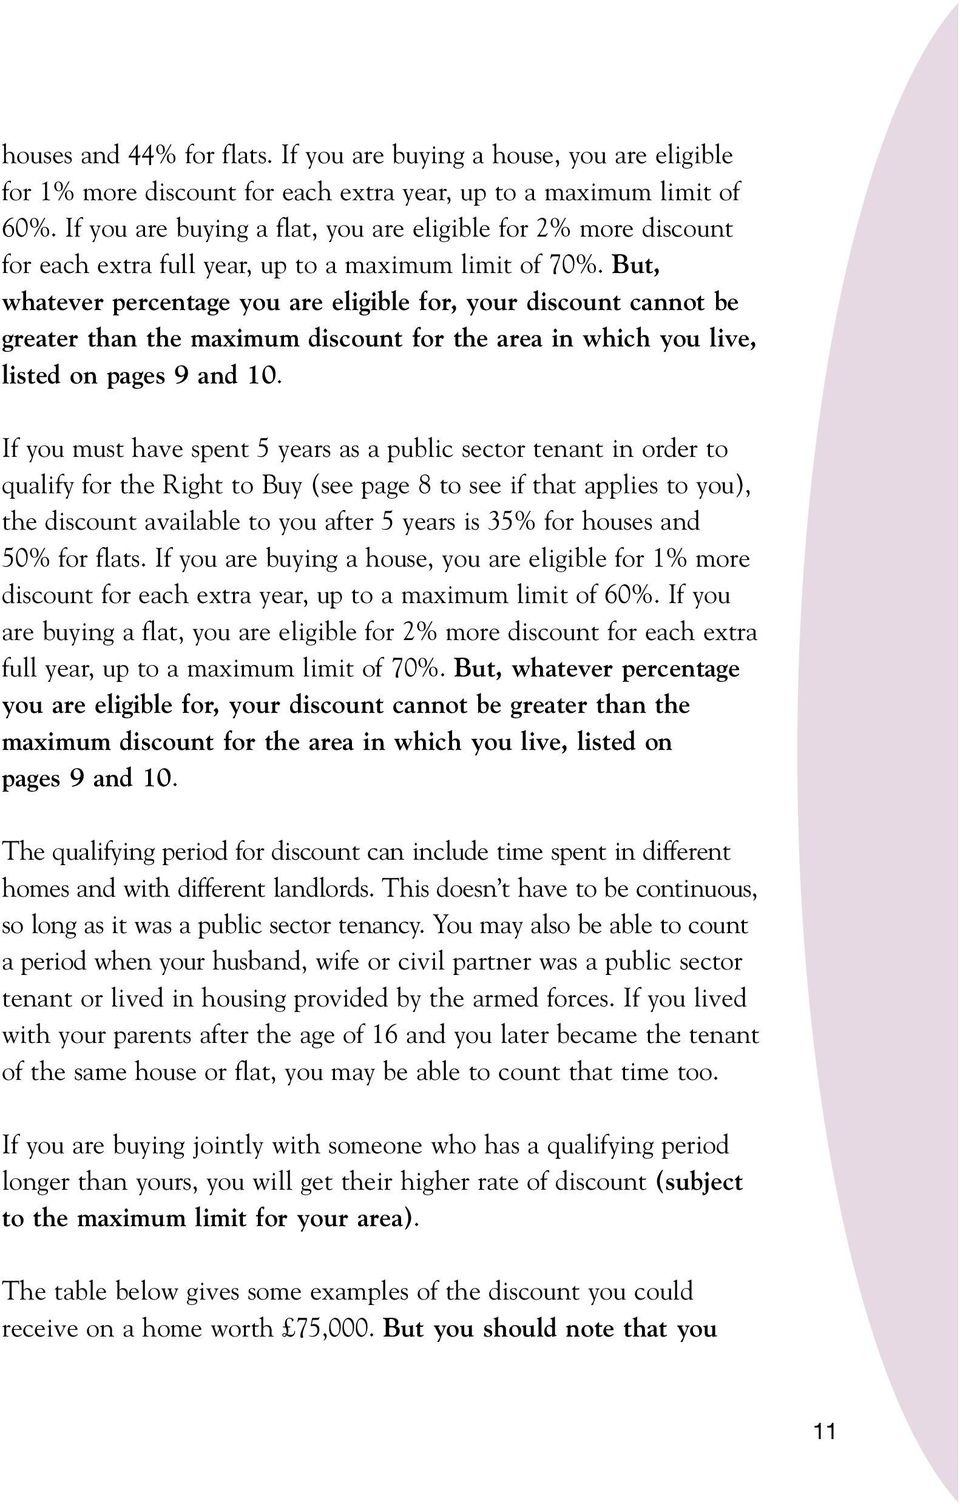 But, whatever percentage you are eligible for, your discount cannot be greater than the maximum discount for the area in which you live, listed on pages 9 and 10.